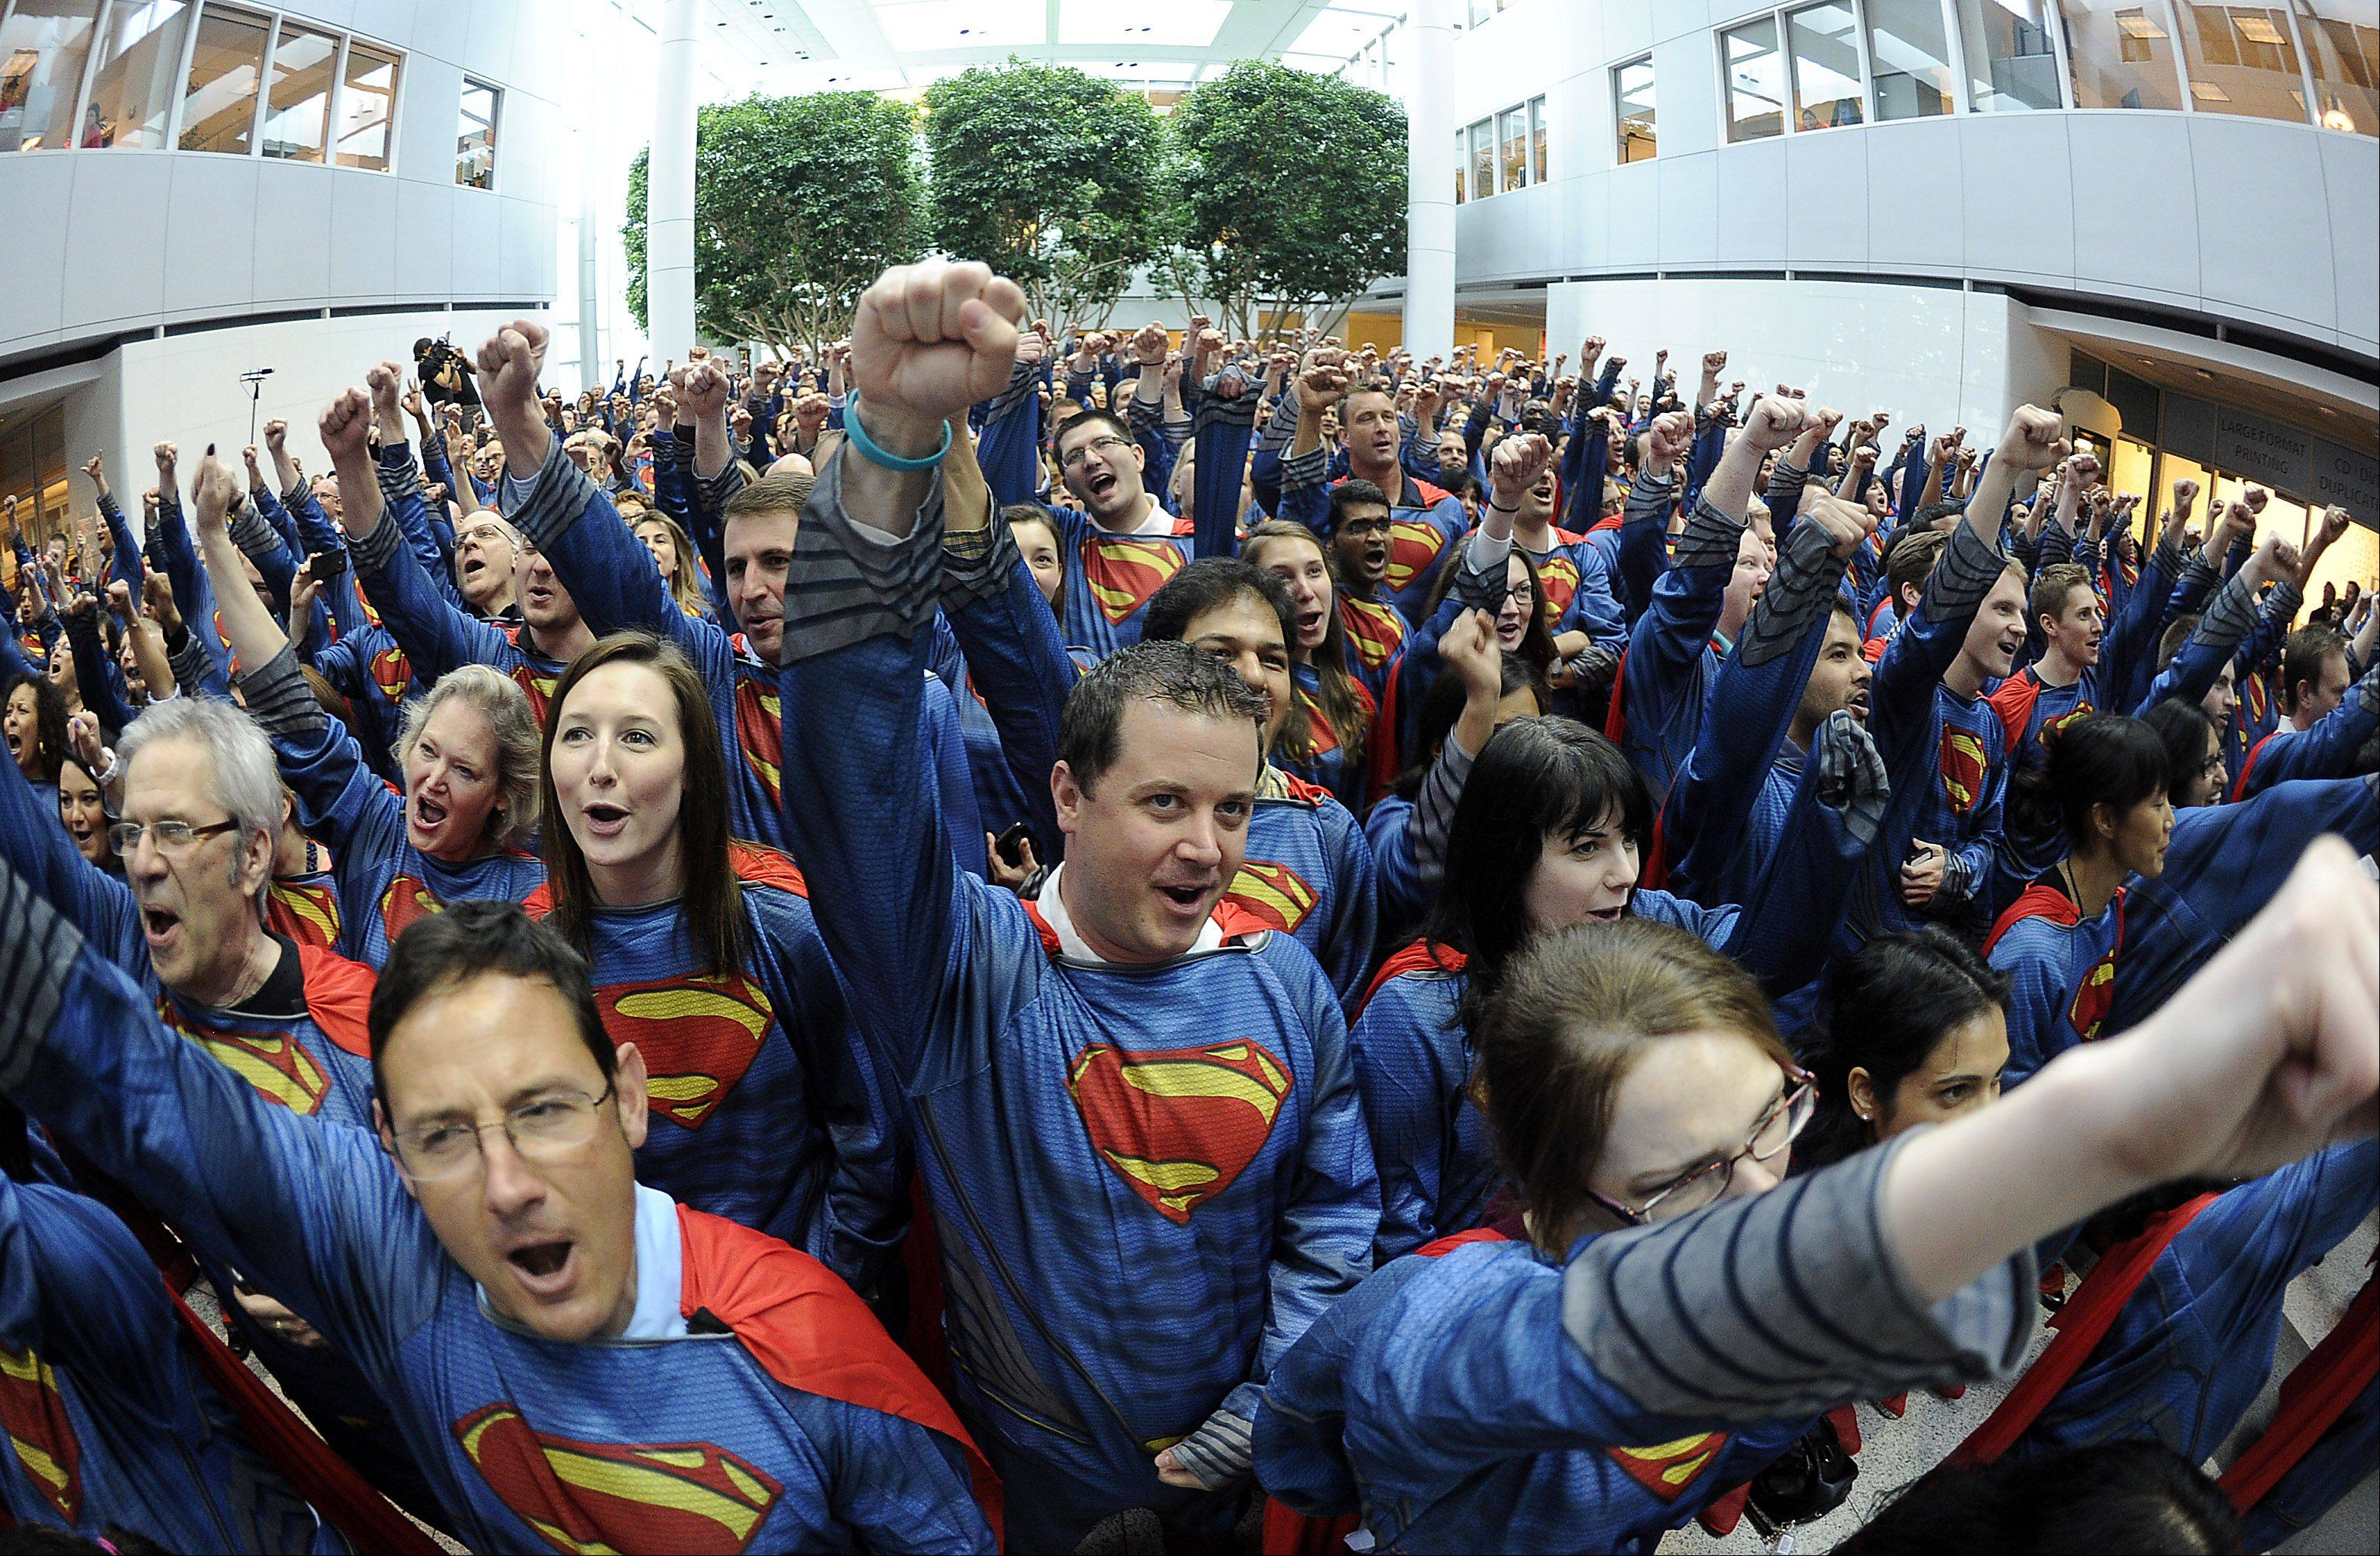 Mike Ullrich of Lake in the Hills was among the 566 employees participating in the Superman record.